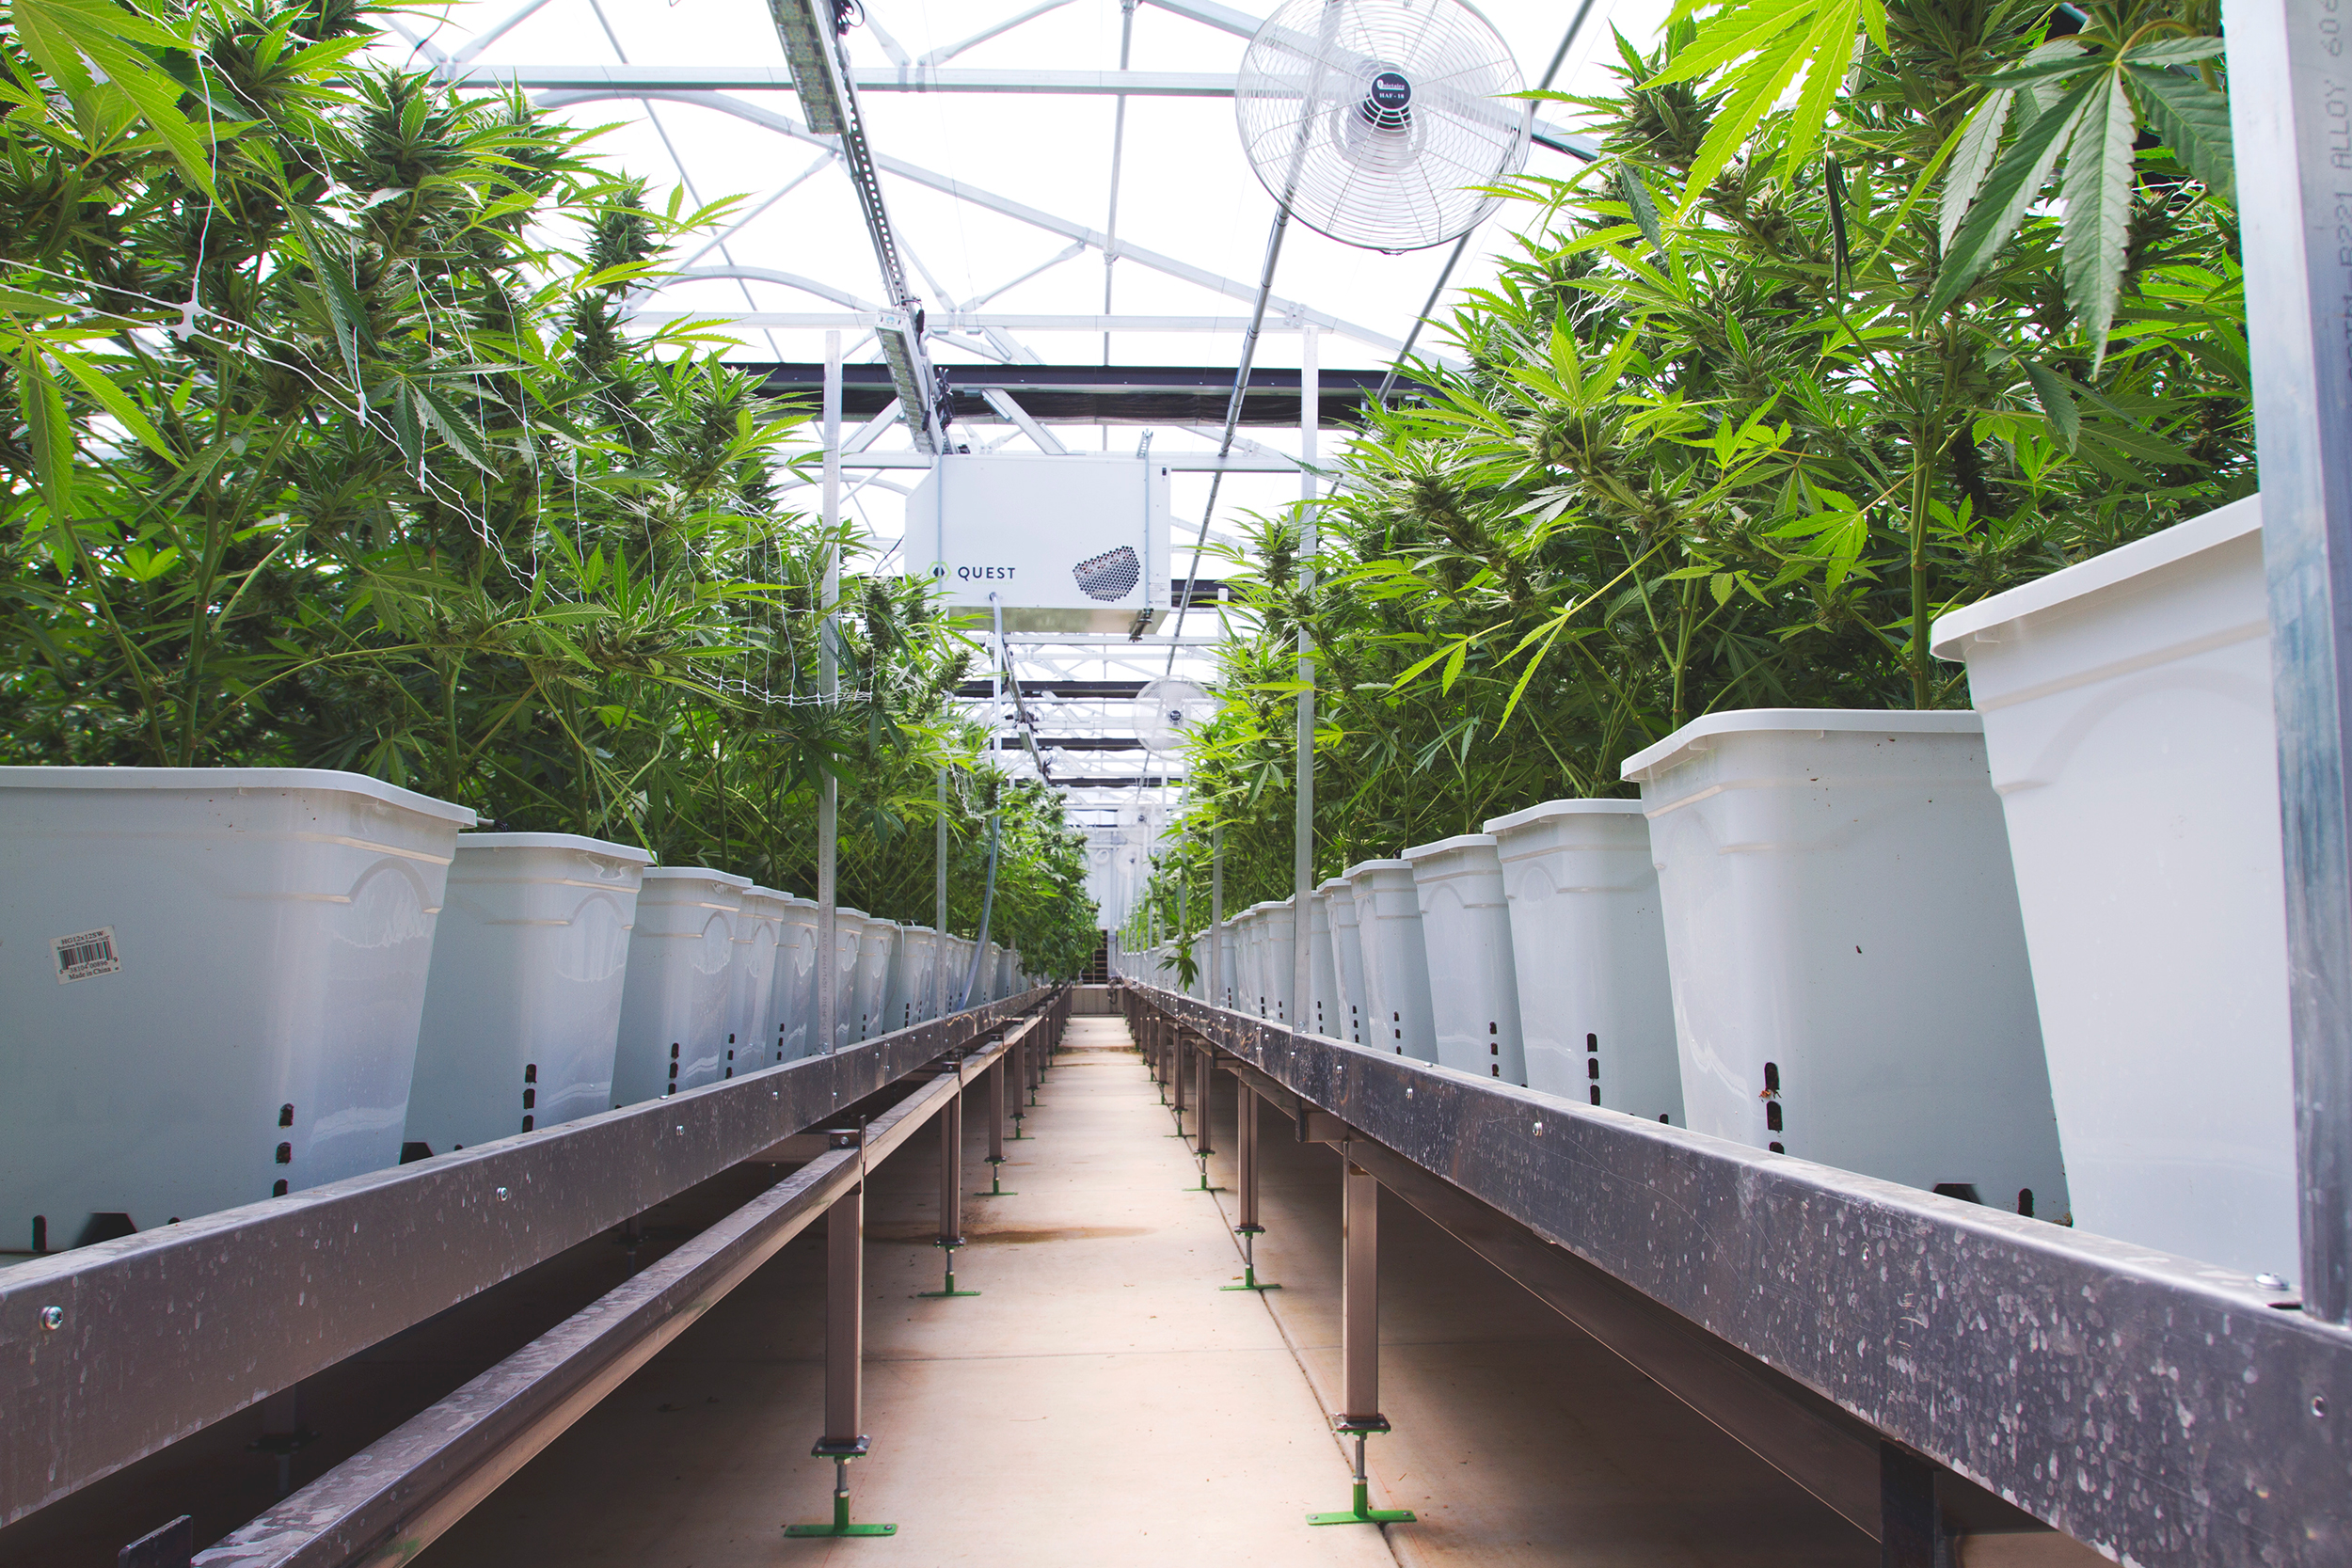 Gro-Tech Systems : Cannabis plants growing in light dep greenhouse